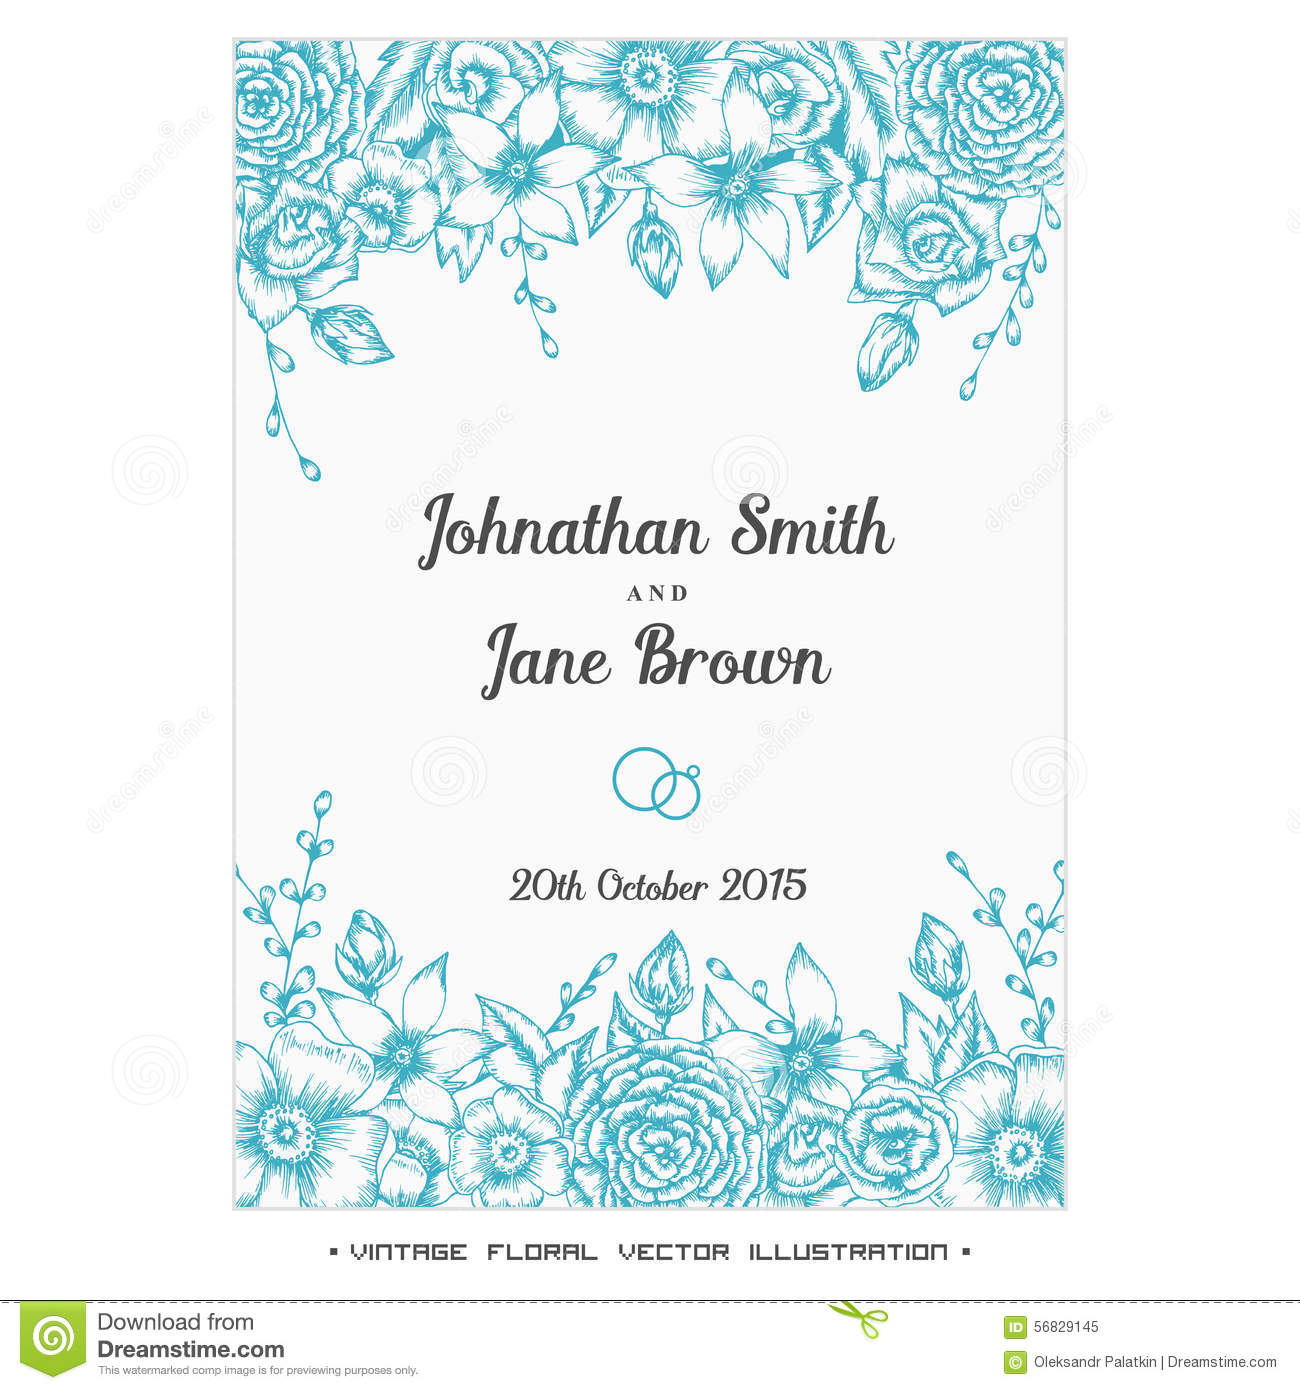 Vector vintage floral wedding invitation stock vector vector vintage floral wedding invitation stopboris Image collections